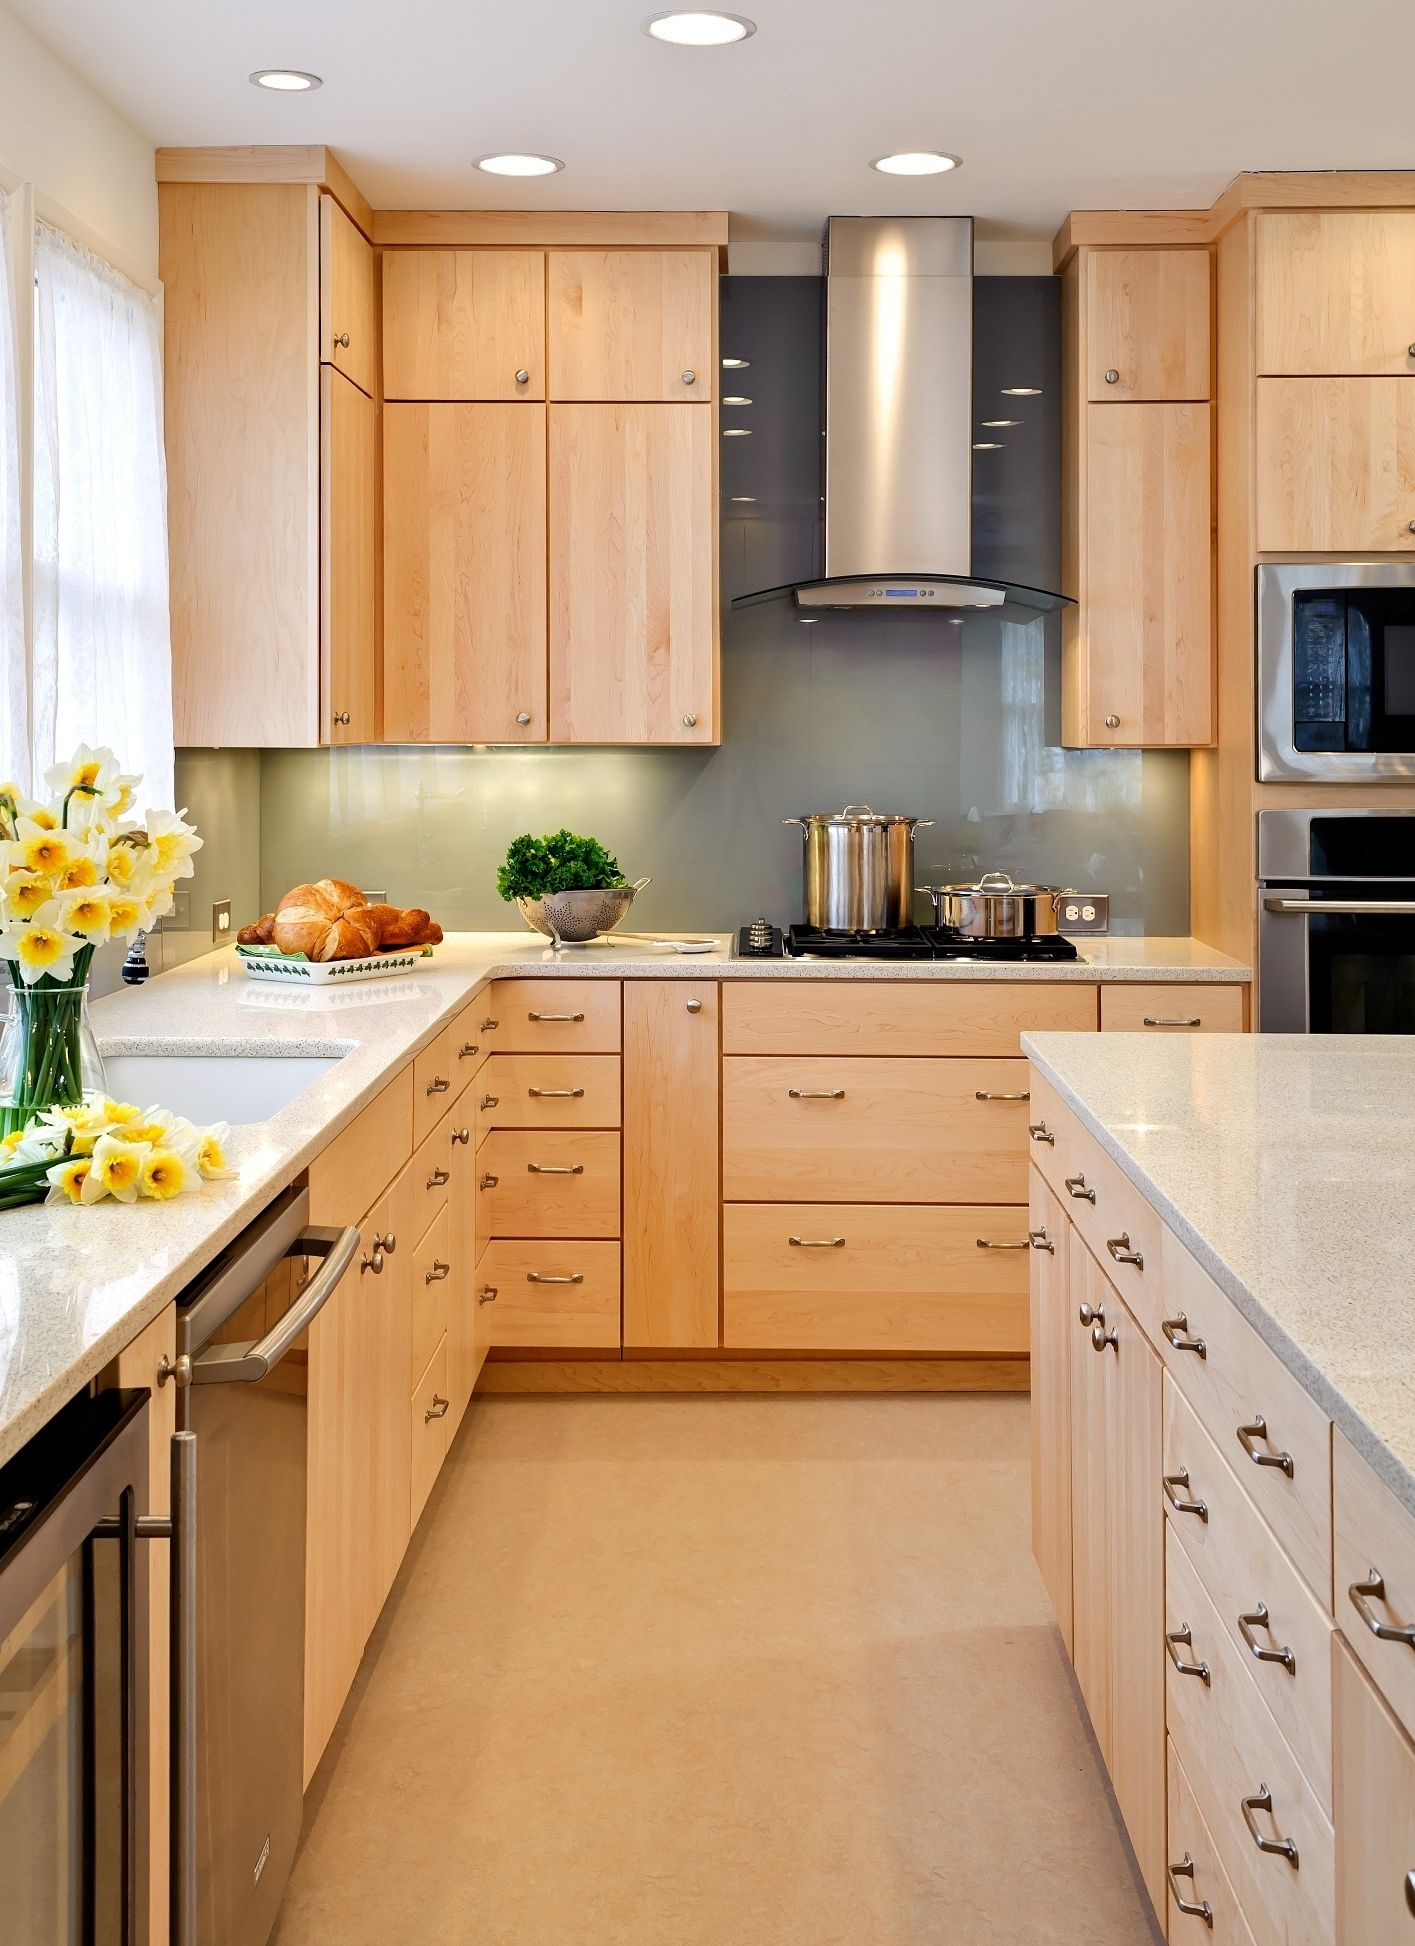 Natural Finish Maple Kitchen Cabinets Tags With Choosing For Contemporary Decor Birch Kitchen Cabinets Maple Kitchen Cabinets Kitchen Cabinets And Countertops